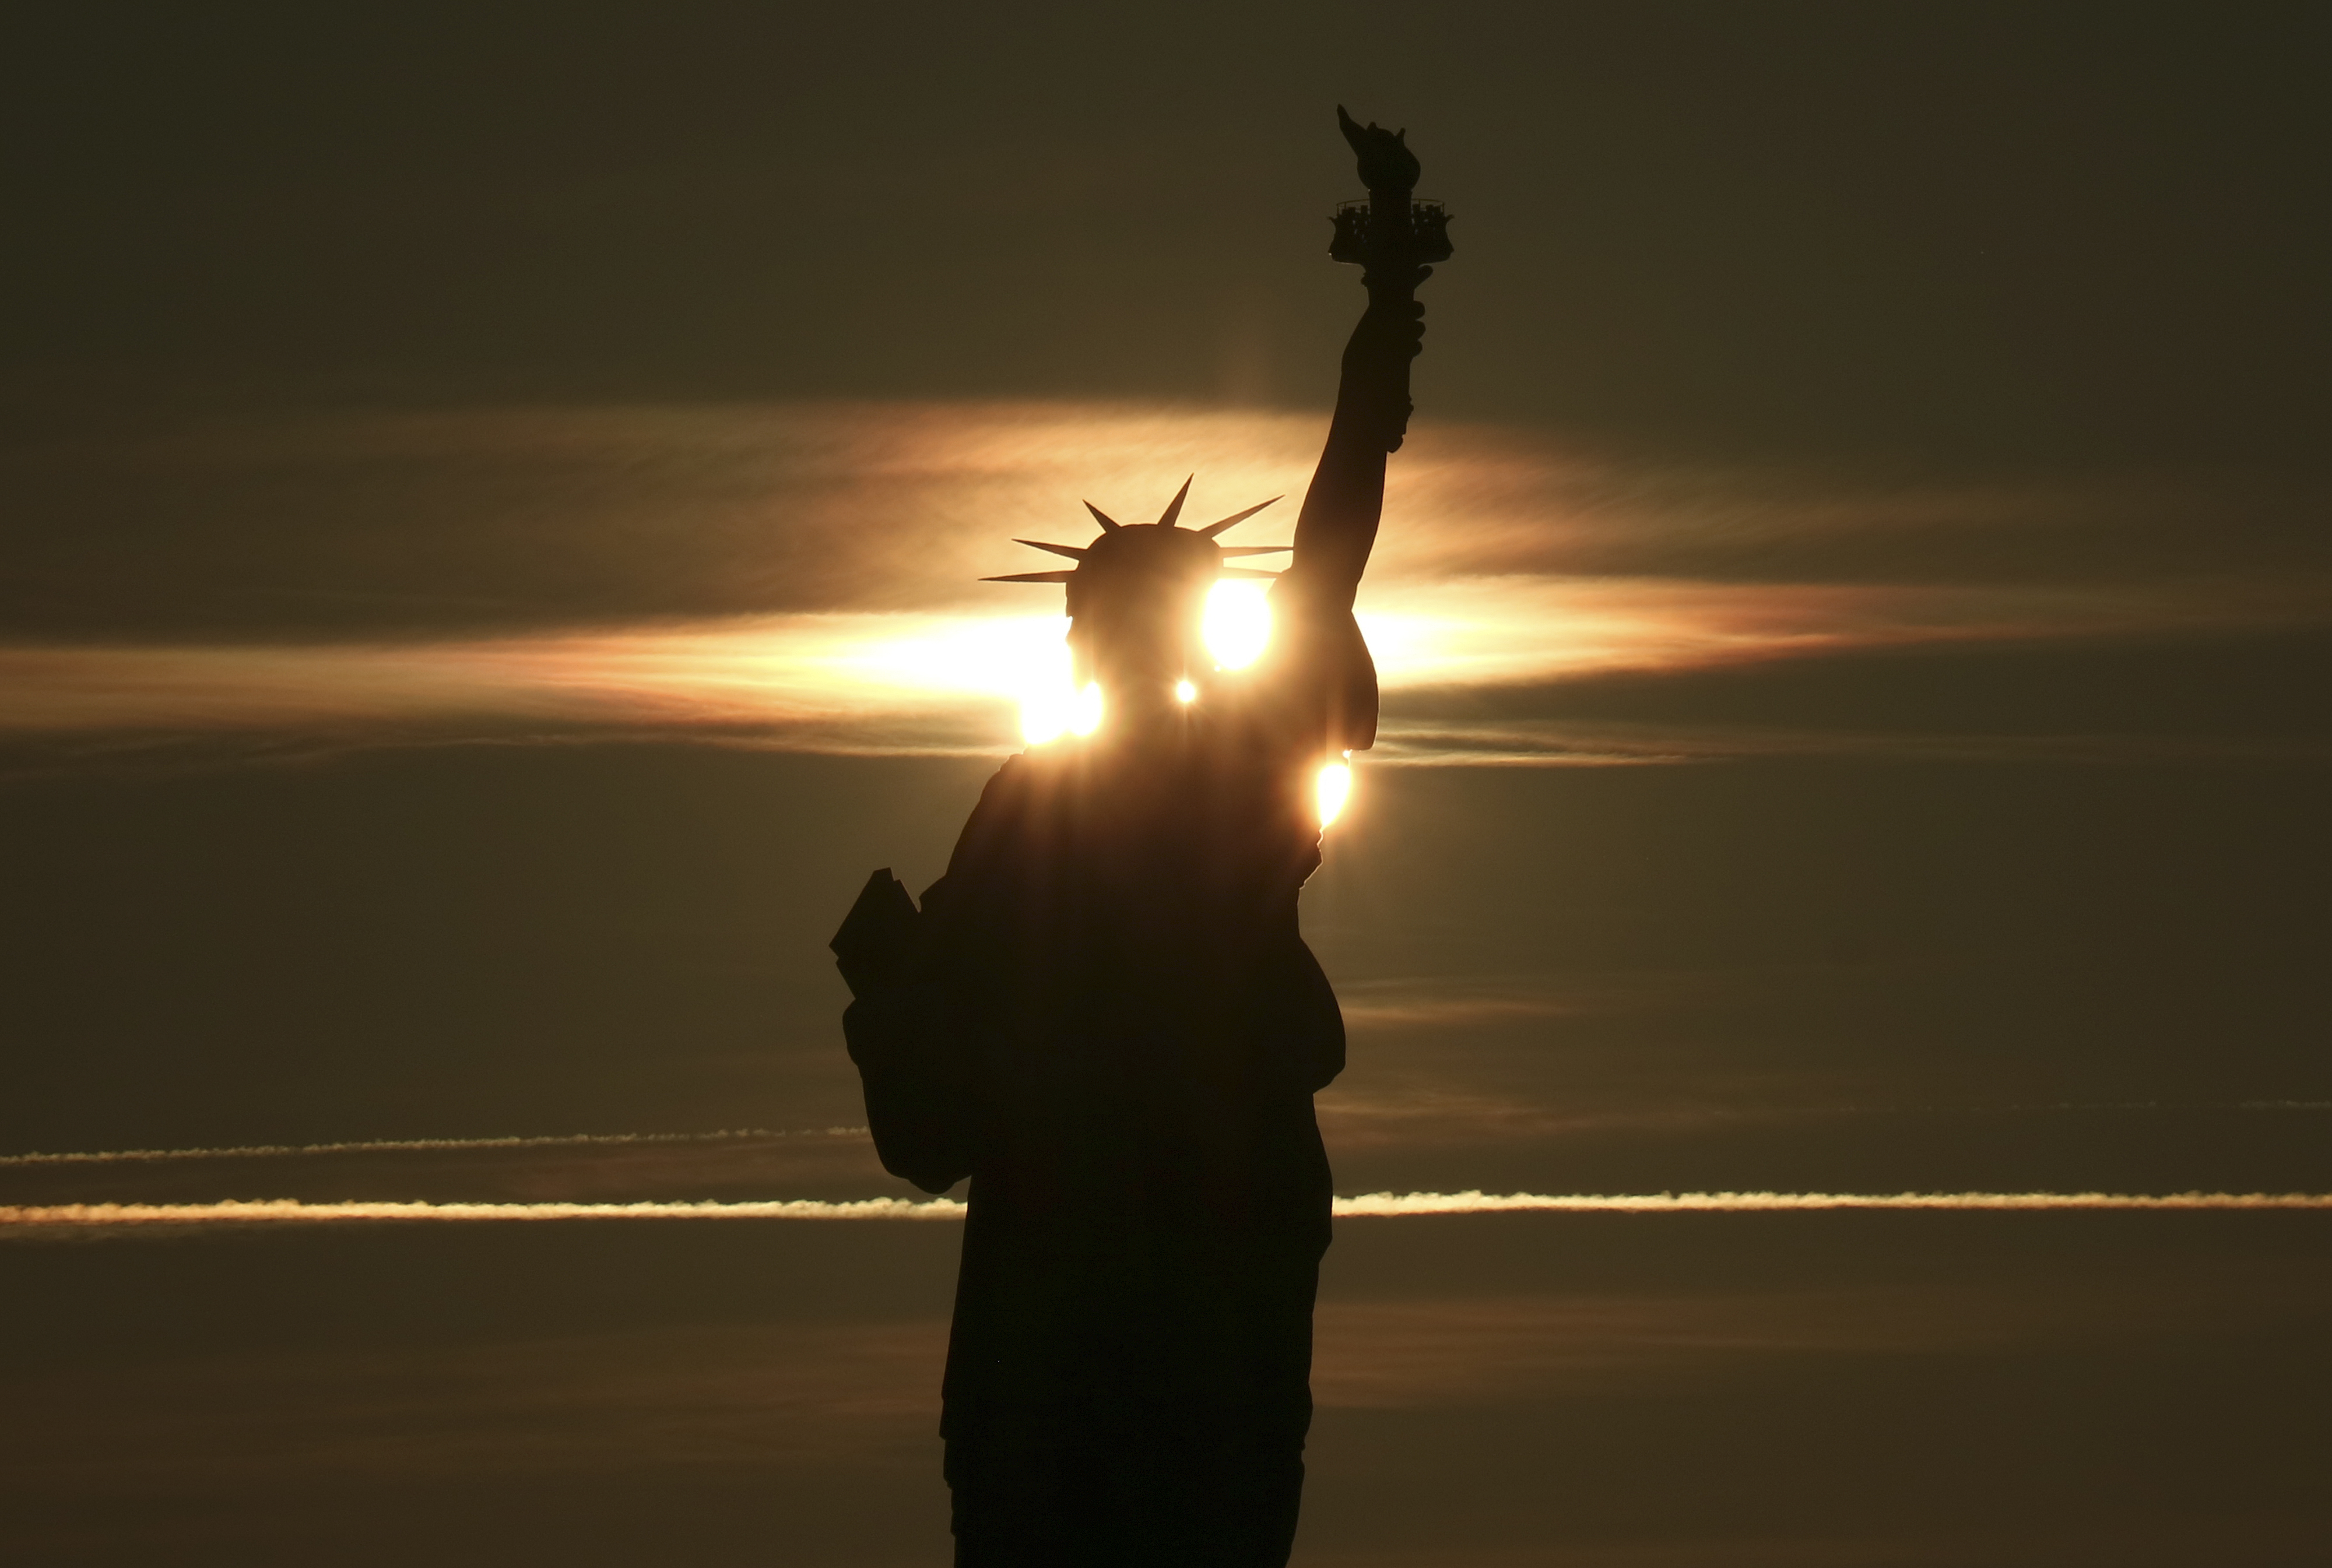 The sun rises behind the Statue of Liberty in New York City on December 29, 2018 as seen from Liberty State Park in Jersey City, New Jersey.